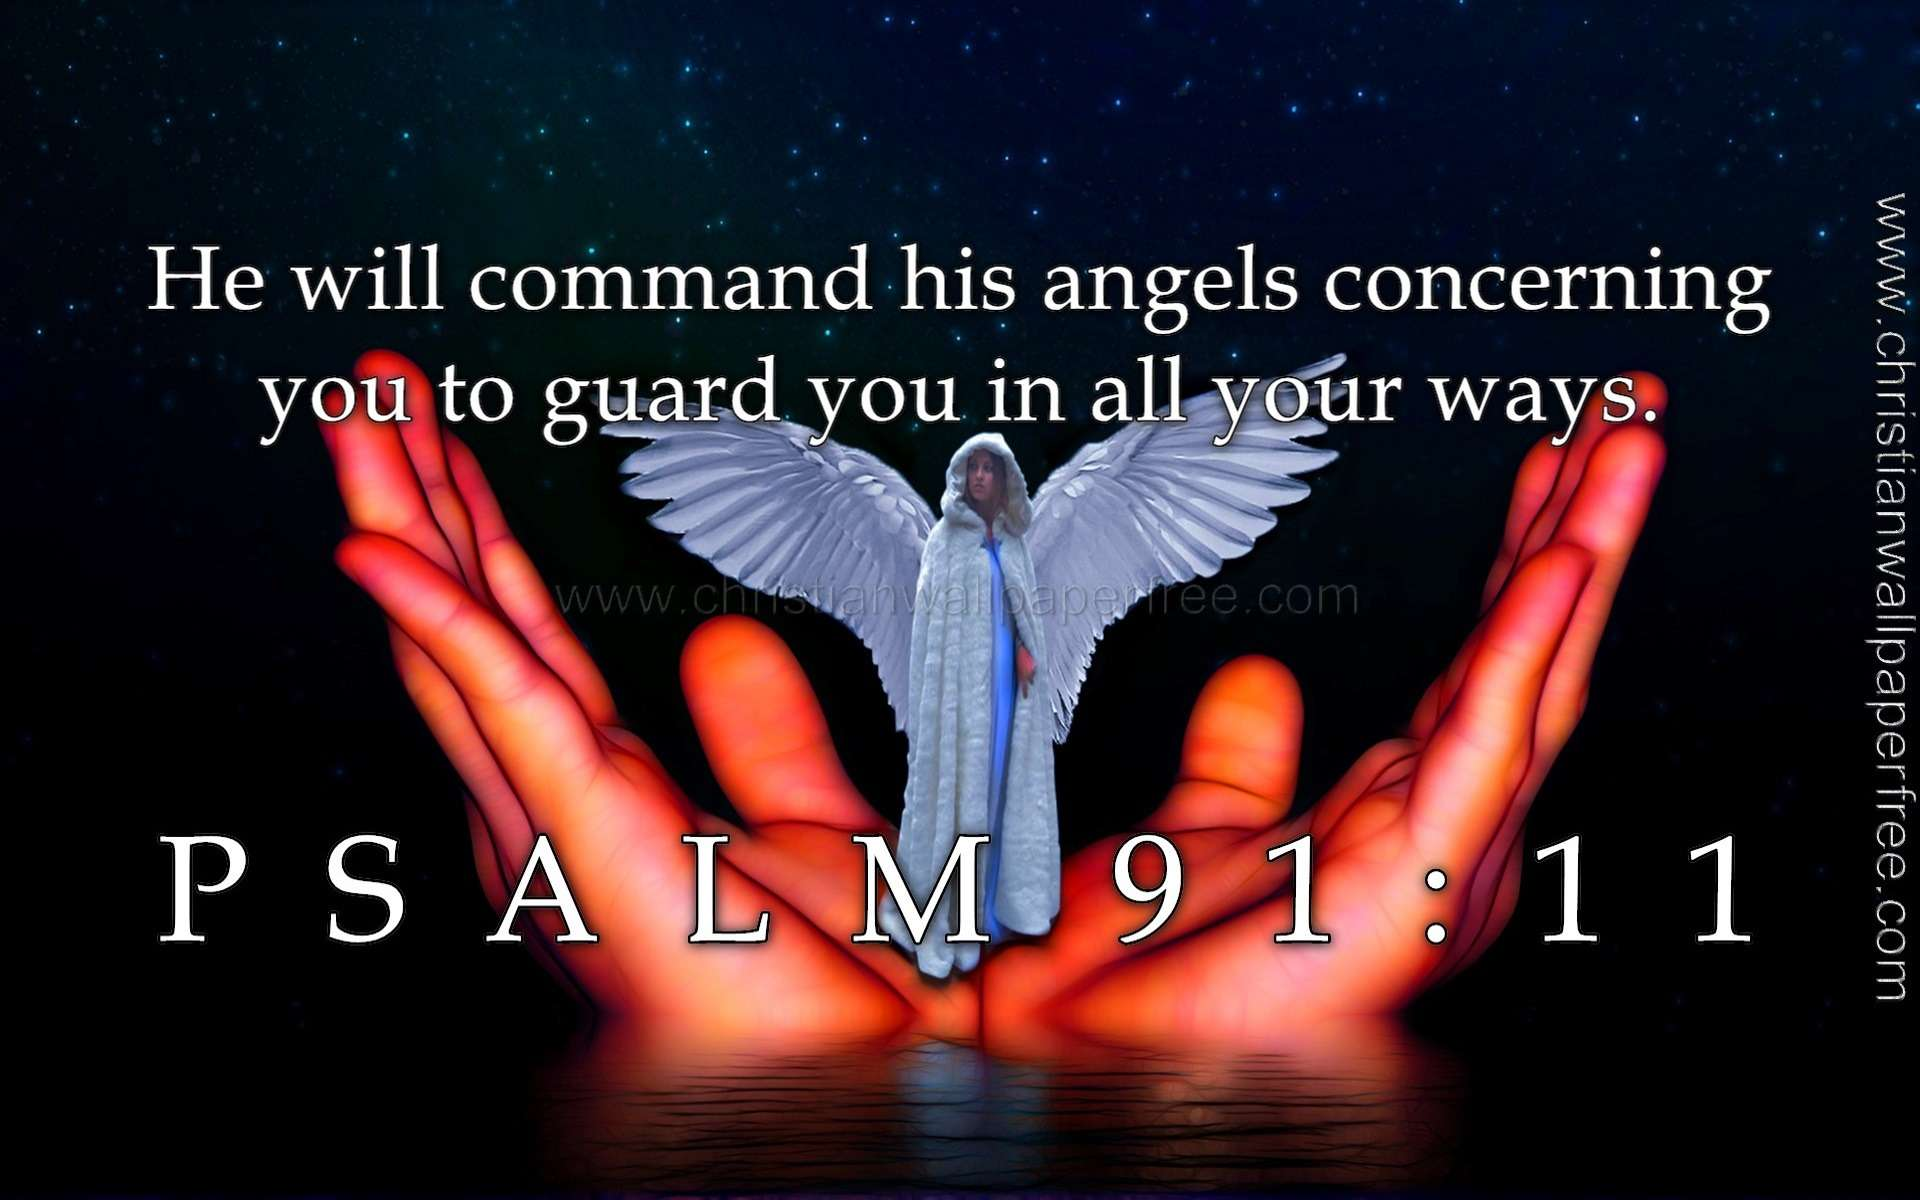 Psalm 91 Verse 11 Quote